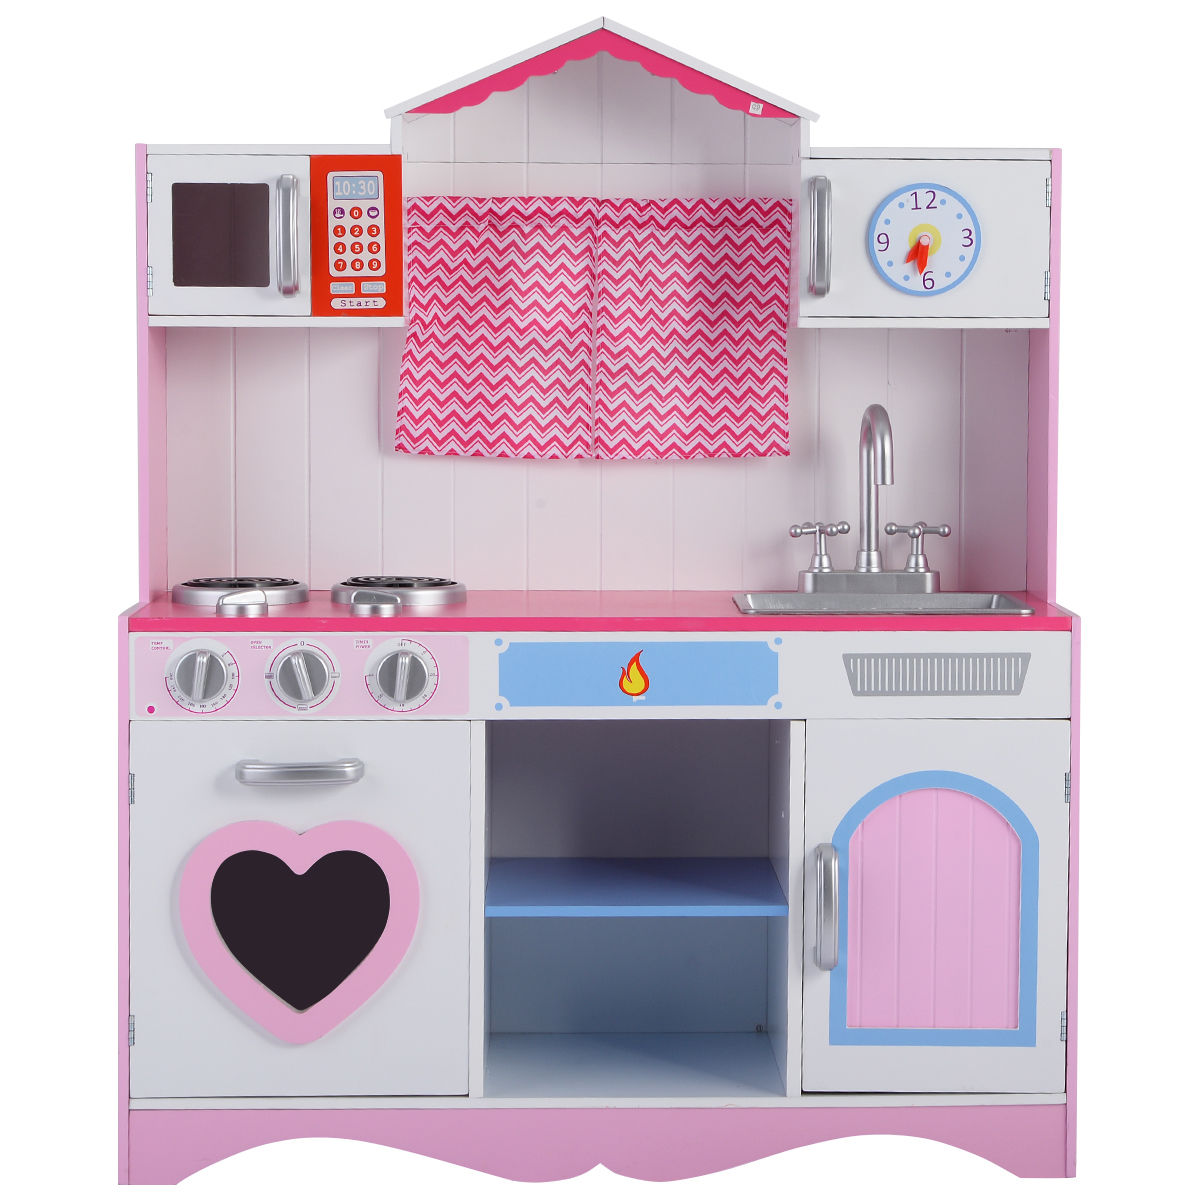 "GHP Kids 32.3""Lx11.8""Wx39.4""H White & Pink Durable Pretend Play Kitchen Cooking Set by"